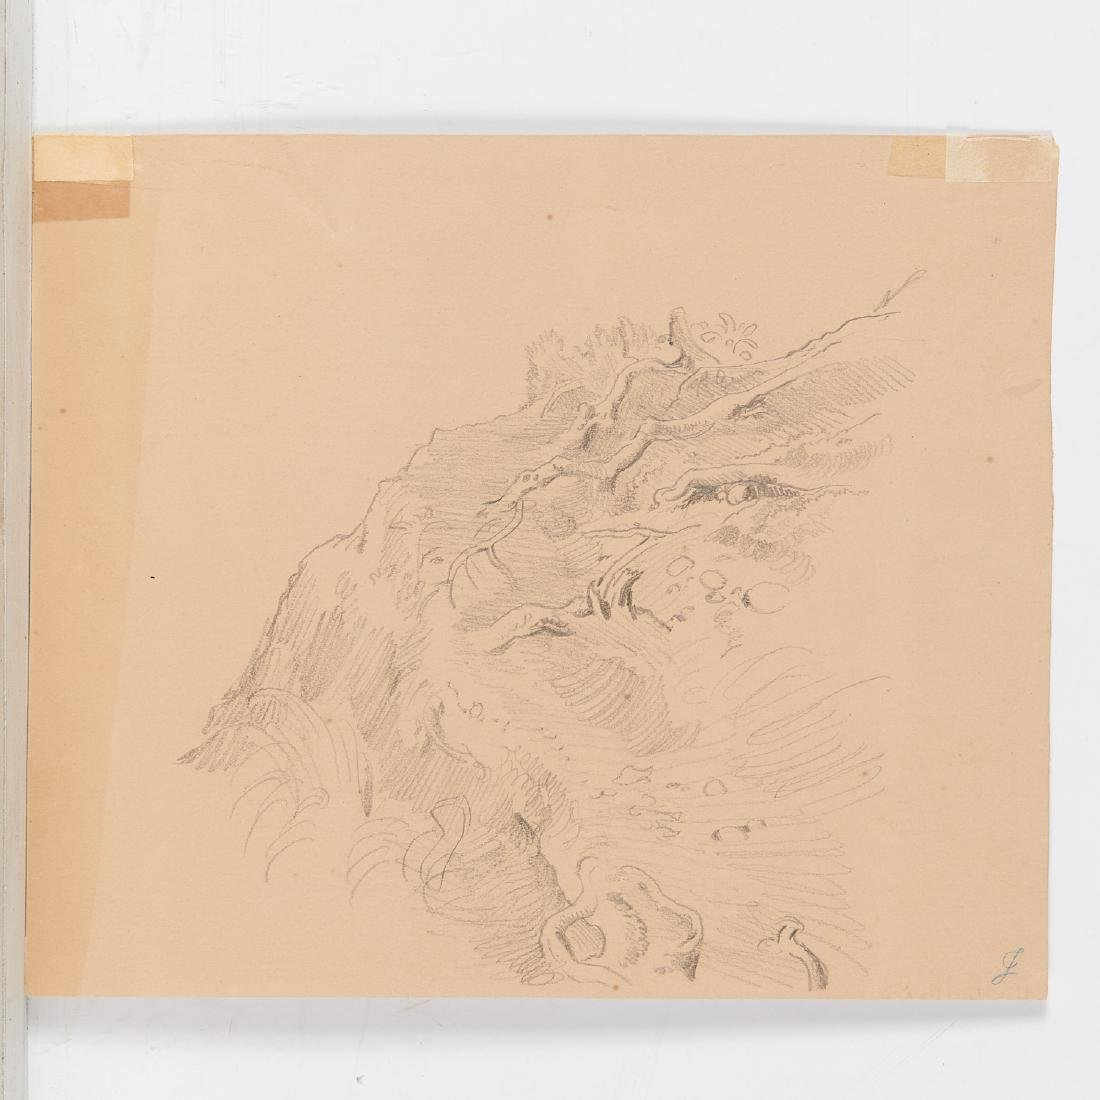 Eugen Neureuther, drawing, c. 1840 - 7